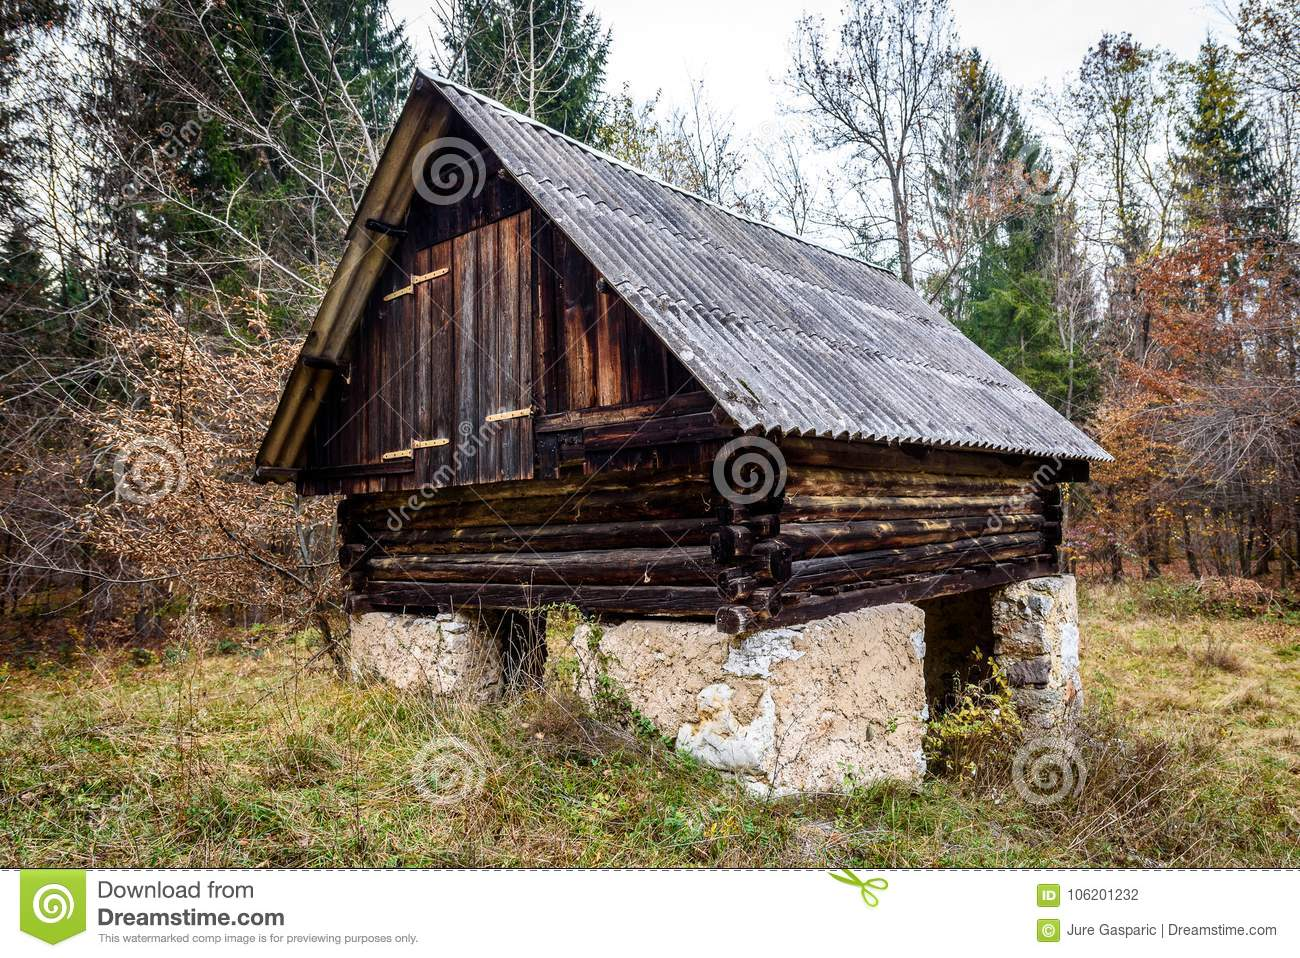 Abandoned old wooden house Cabin in the woods in Slovenia.